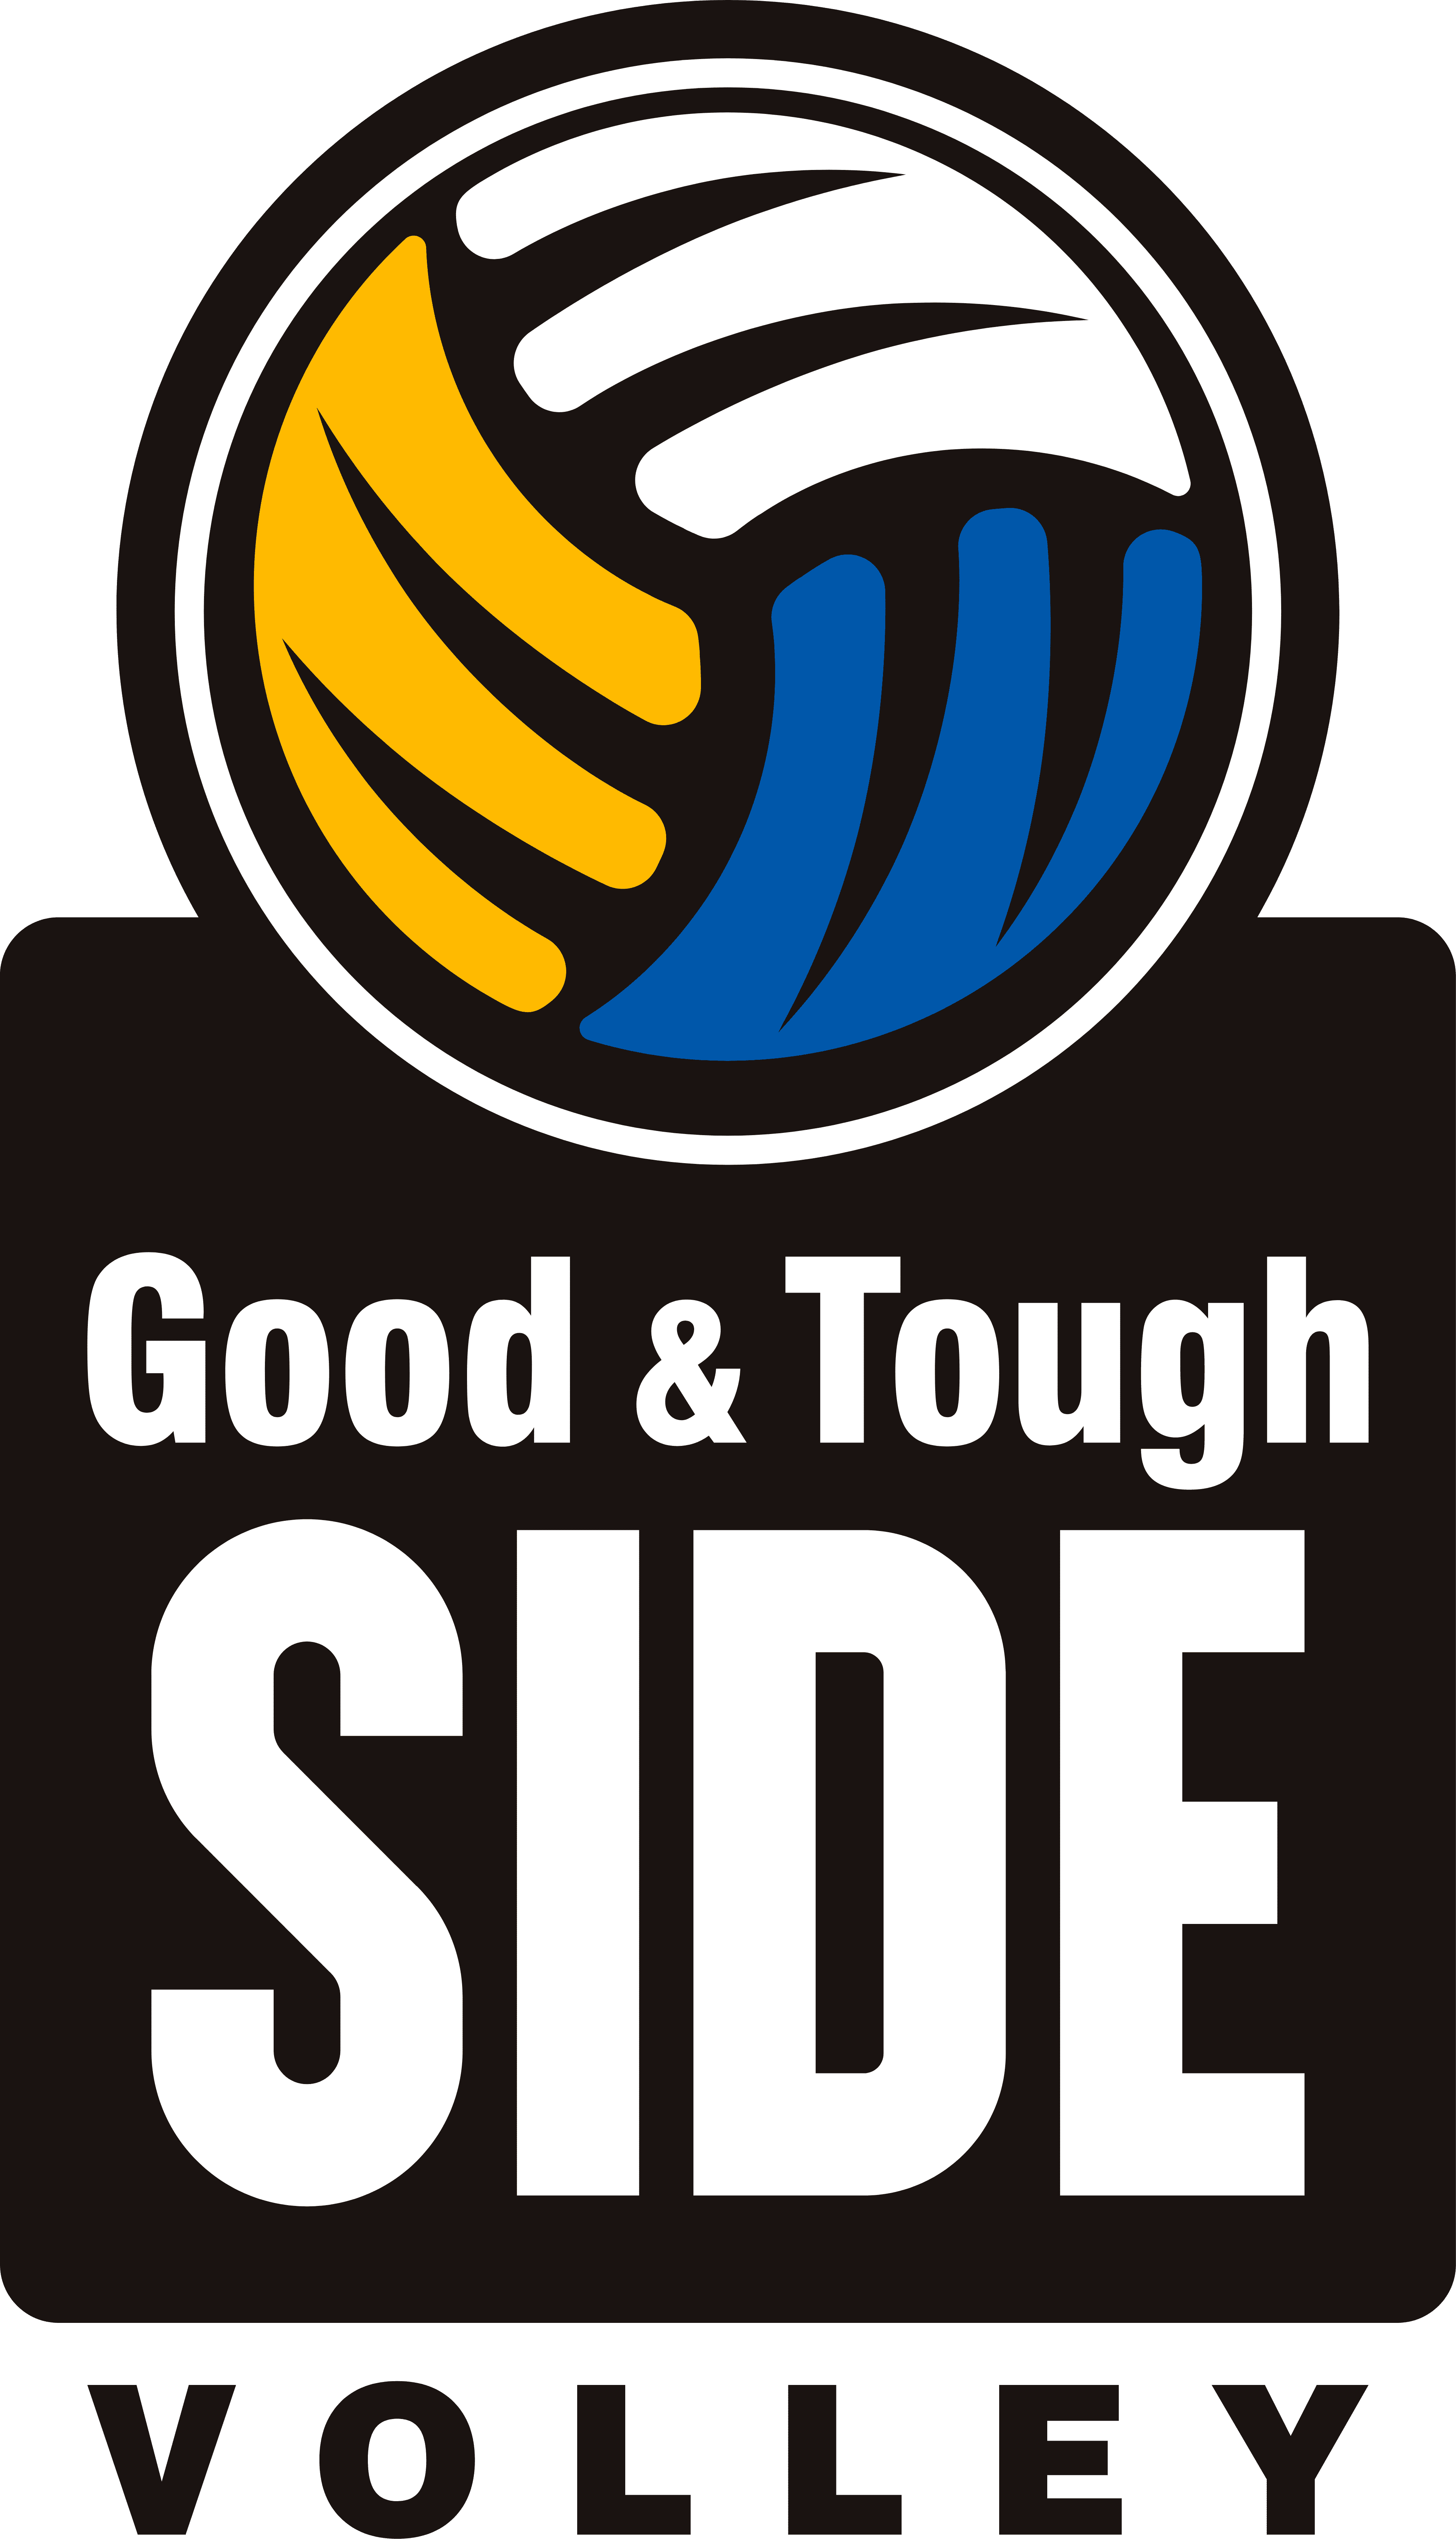 good & tough side of volleryball logo